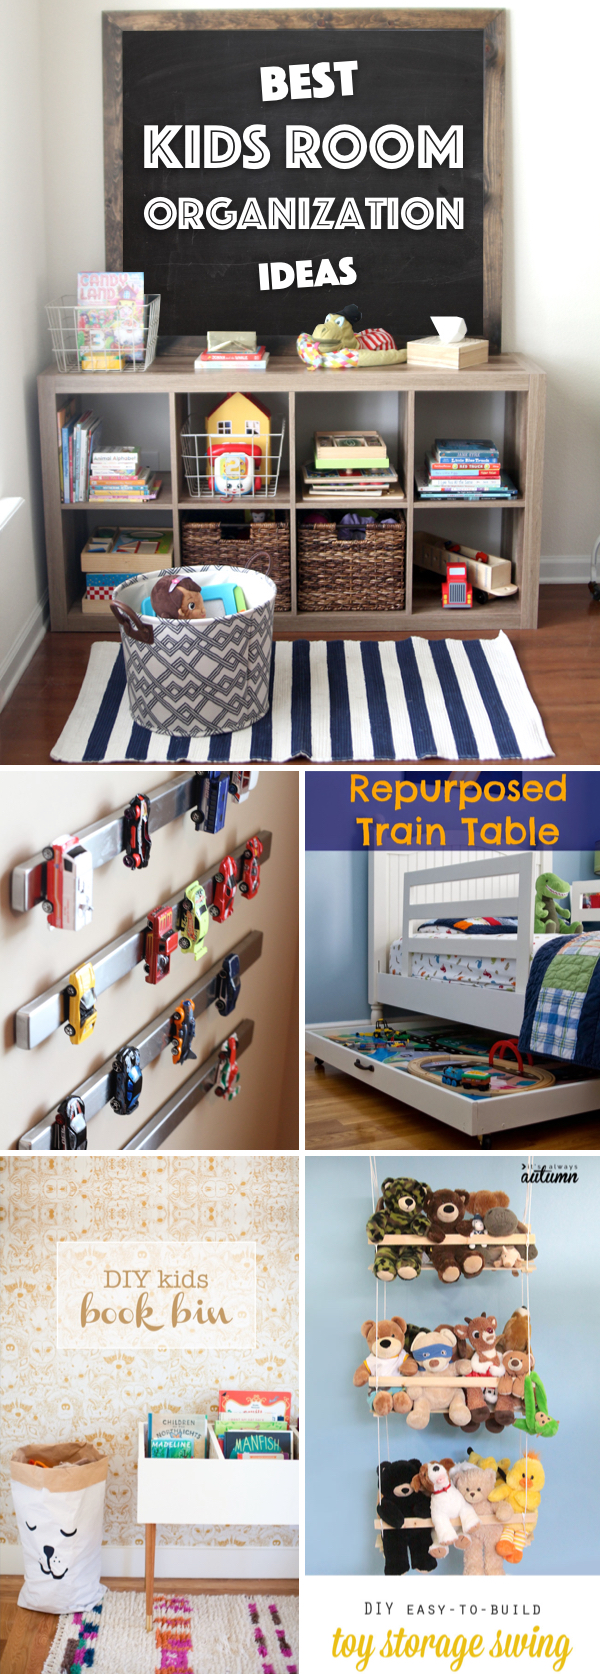 9 Kids Room Organization Ideas Stretching From Toys to School Supplies